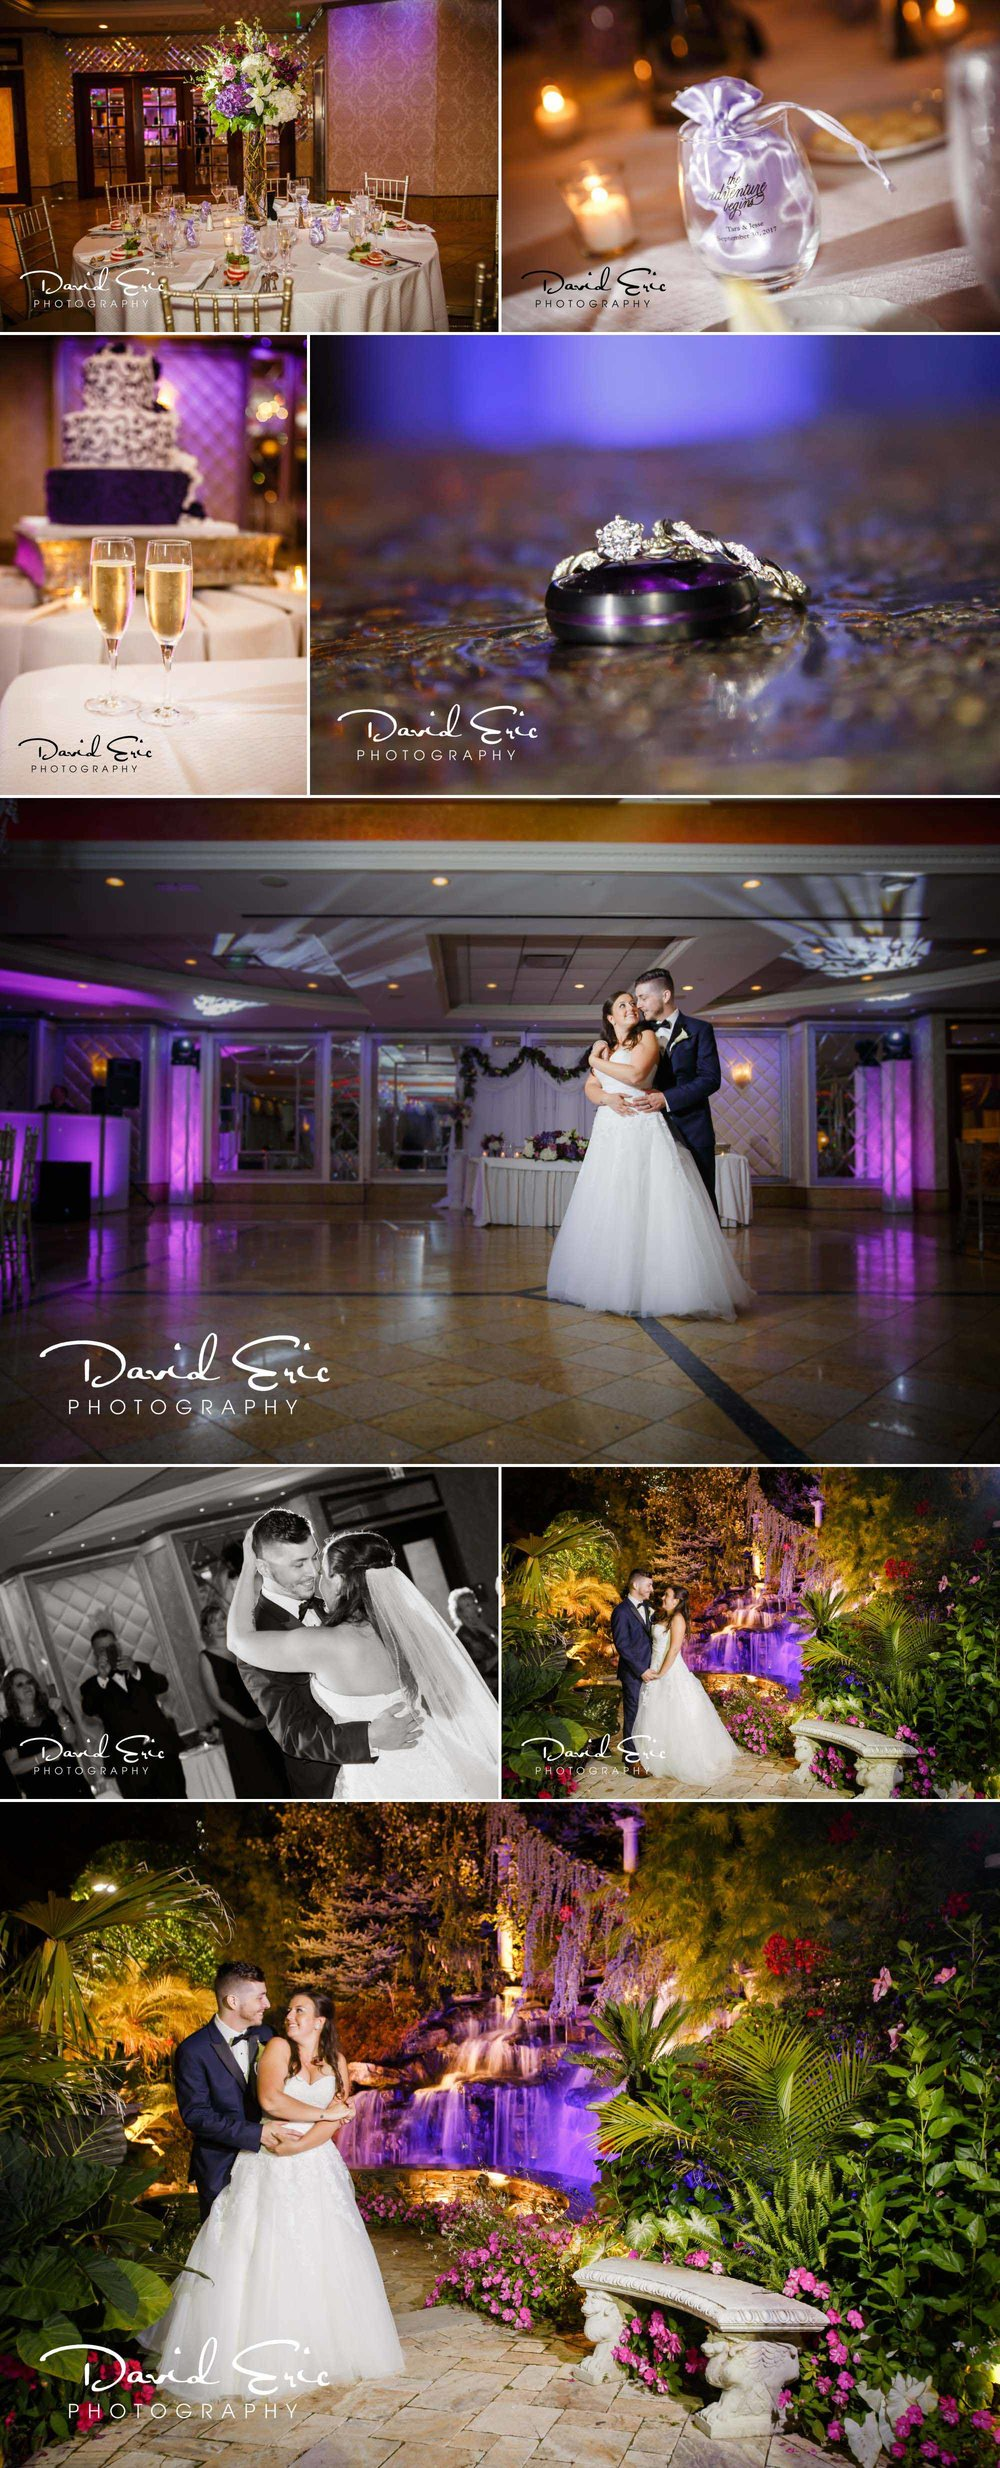 Reception at Seasons Catering located at 644 Pascack Rd, Township of Washington, NJ 07676 featuring the first dance nighttime photo in the gardens